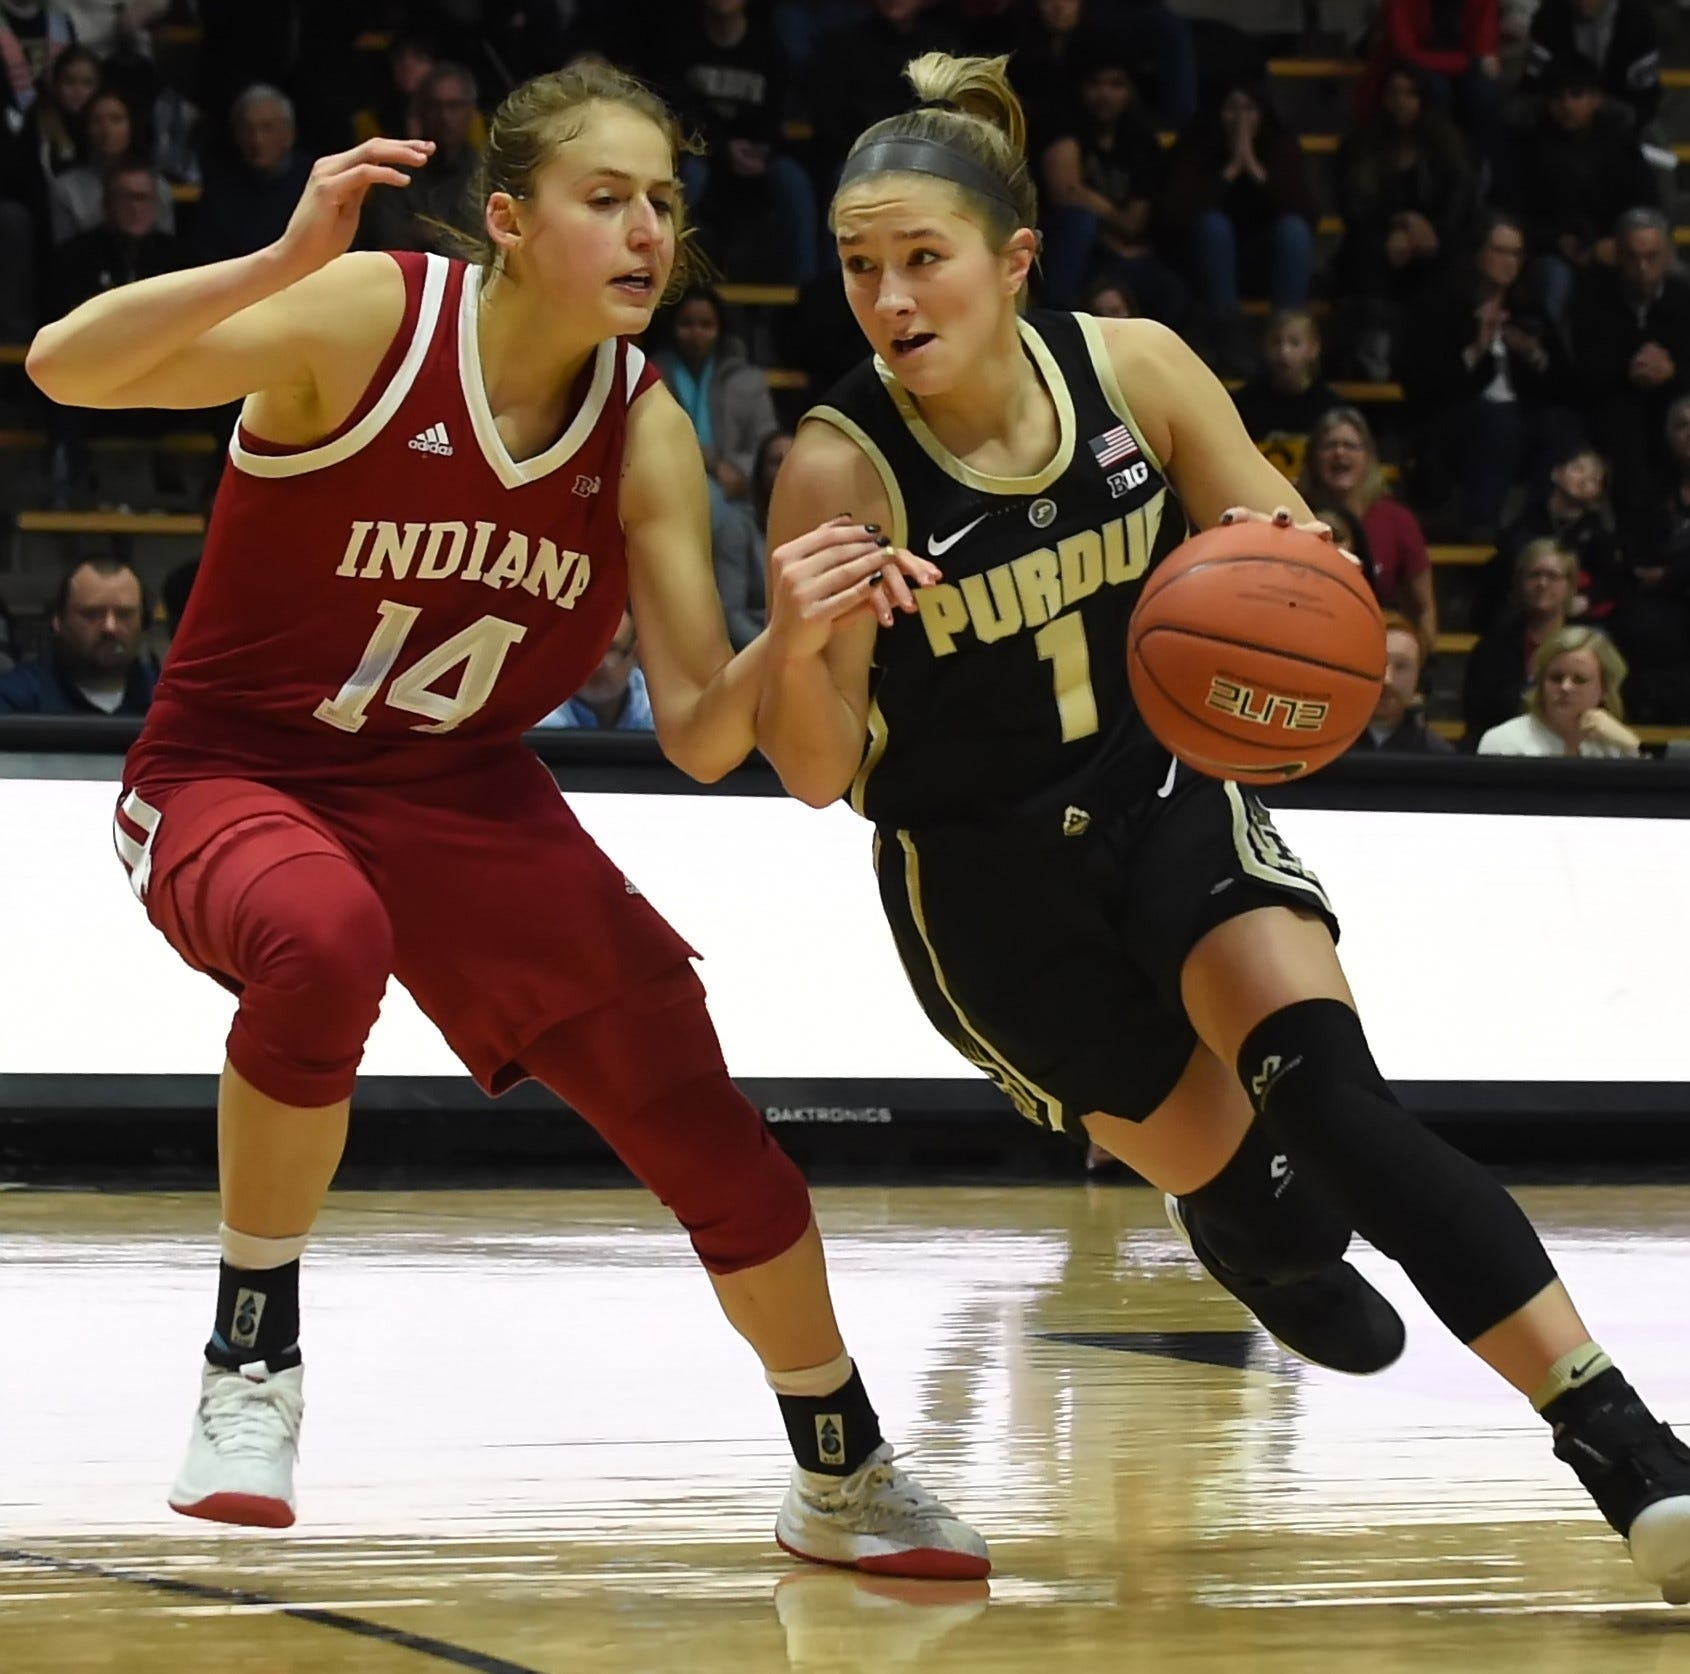 Women's basketball gives Purdue sweep of Indiana on rivalry weekend